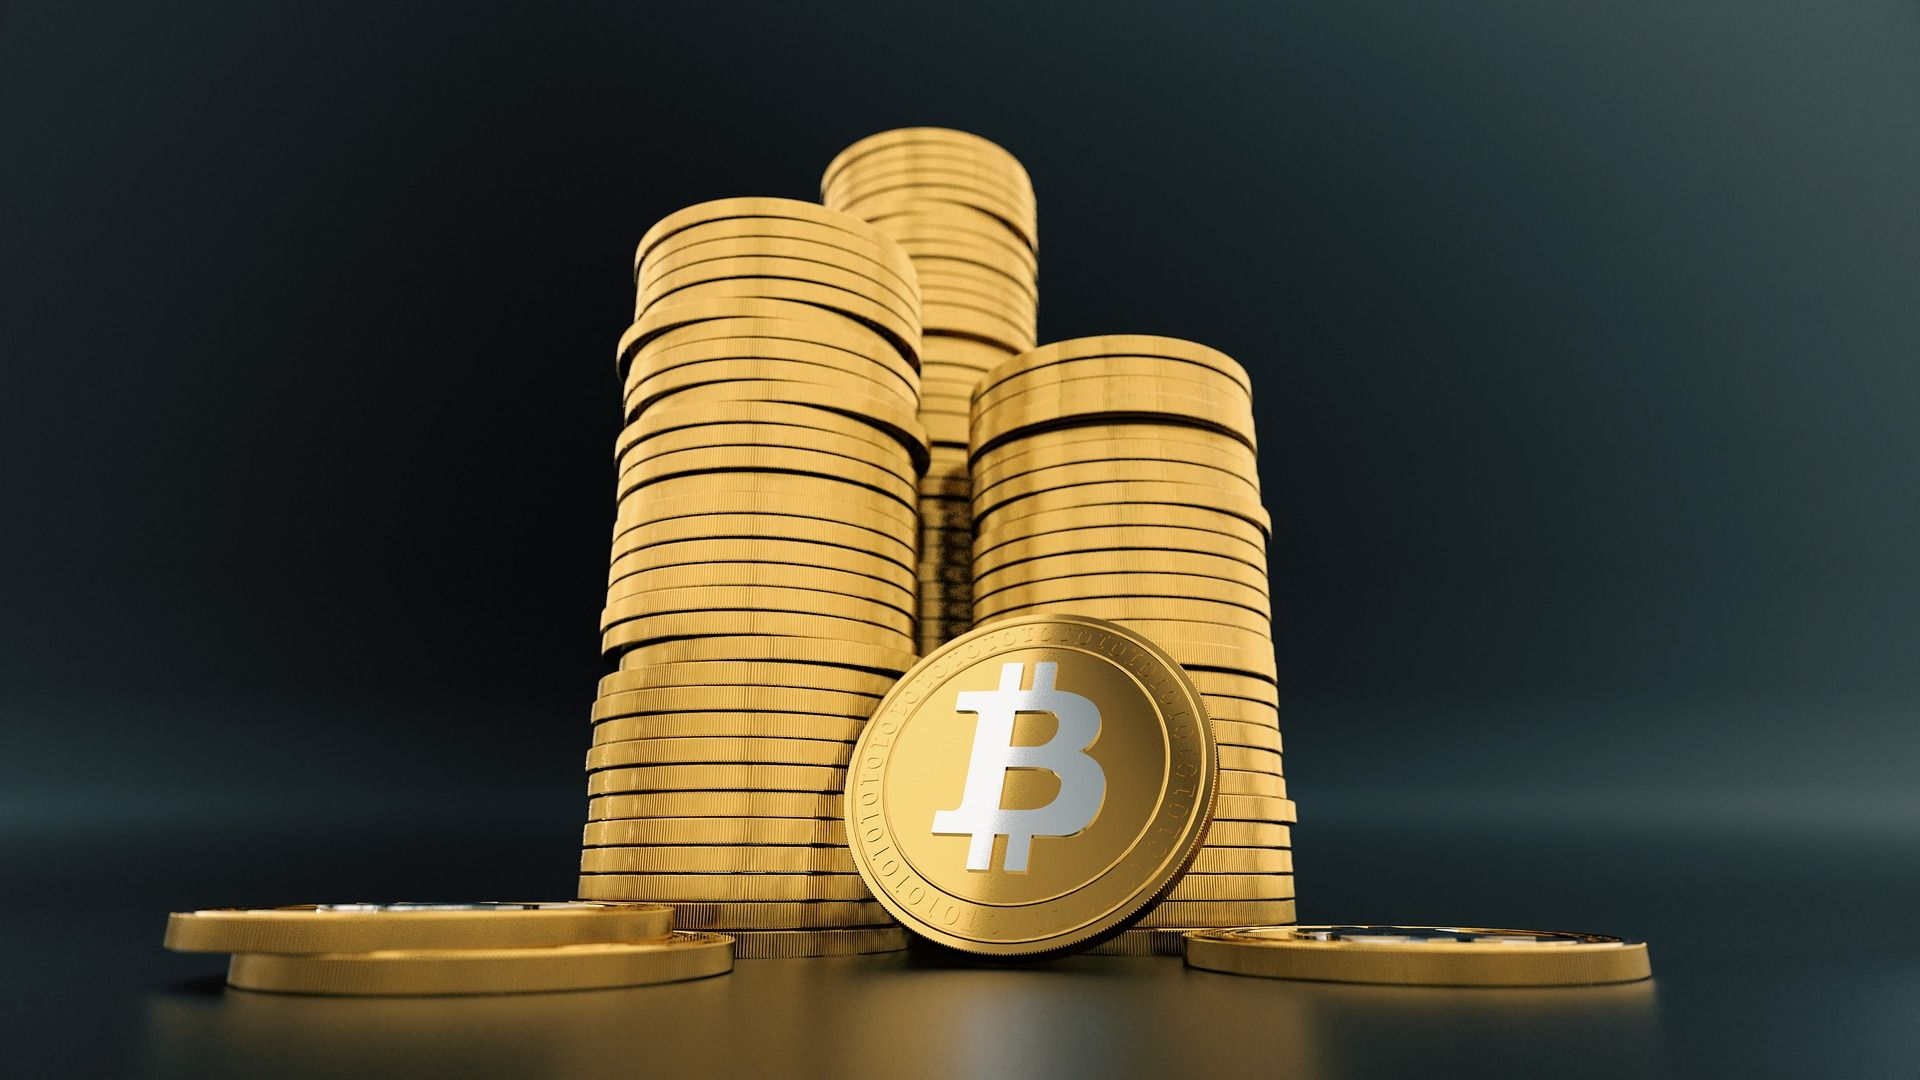 /crypto-is-safer-than-gold-an-argument-y01734wi feature image